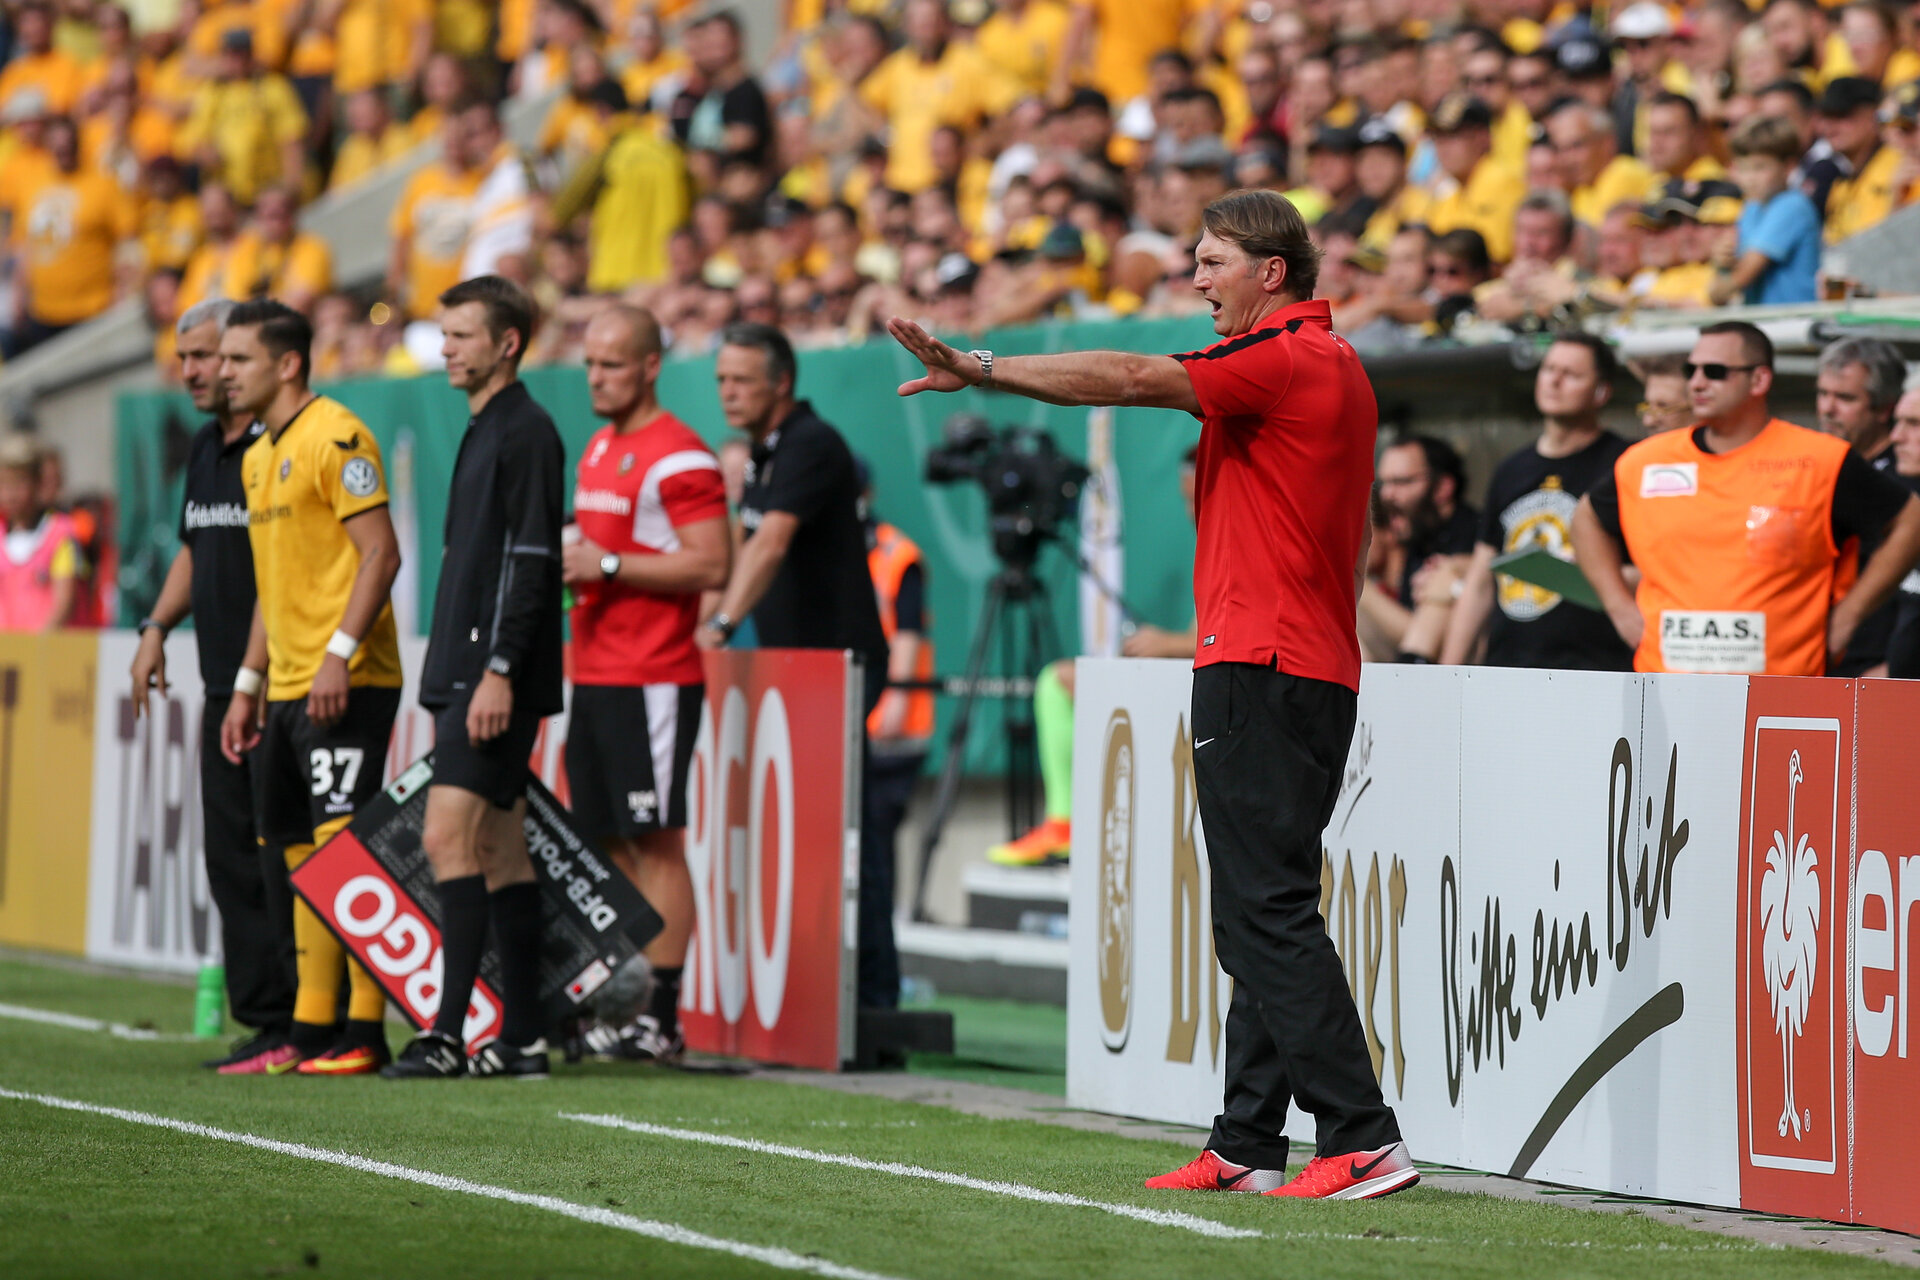 DRESDEN, GERMANY - AUGUST 20:  Head coach of Leipzig Ralph Hasenhuttl gestures during the DFB Cup match between Dynamo Dresden and RB Leipzig at DDV-Stadion on August 20, 2016 in Dresden, Germany.  (Photo by Matej Divizna/Bongarts/Getty Images)